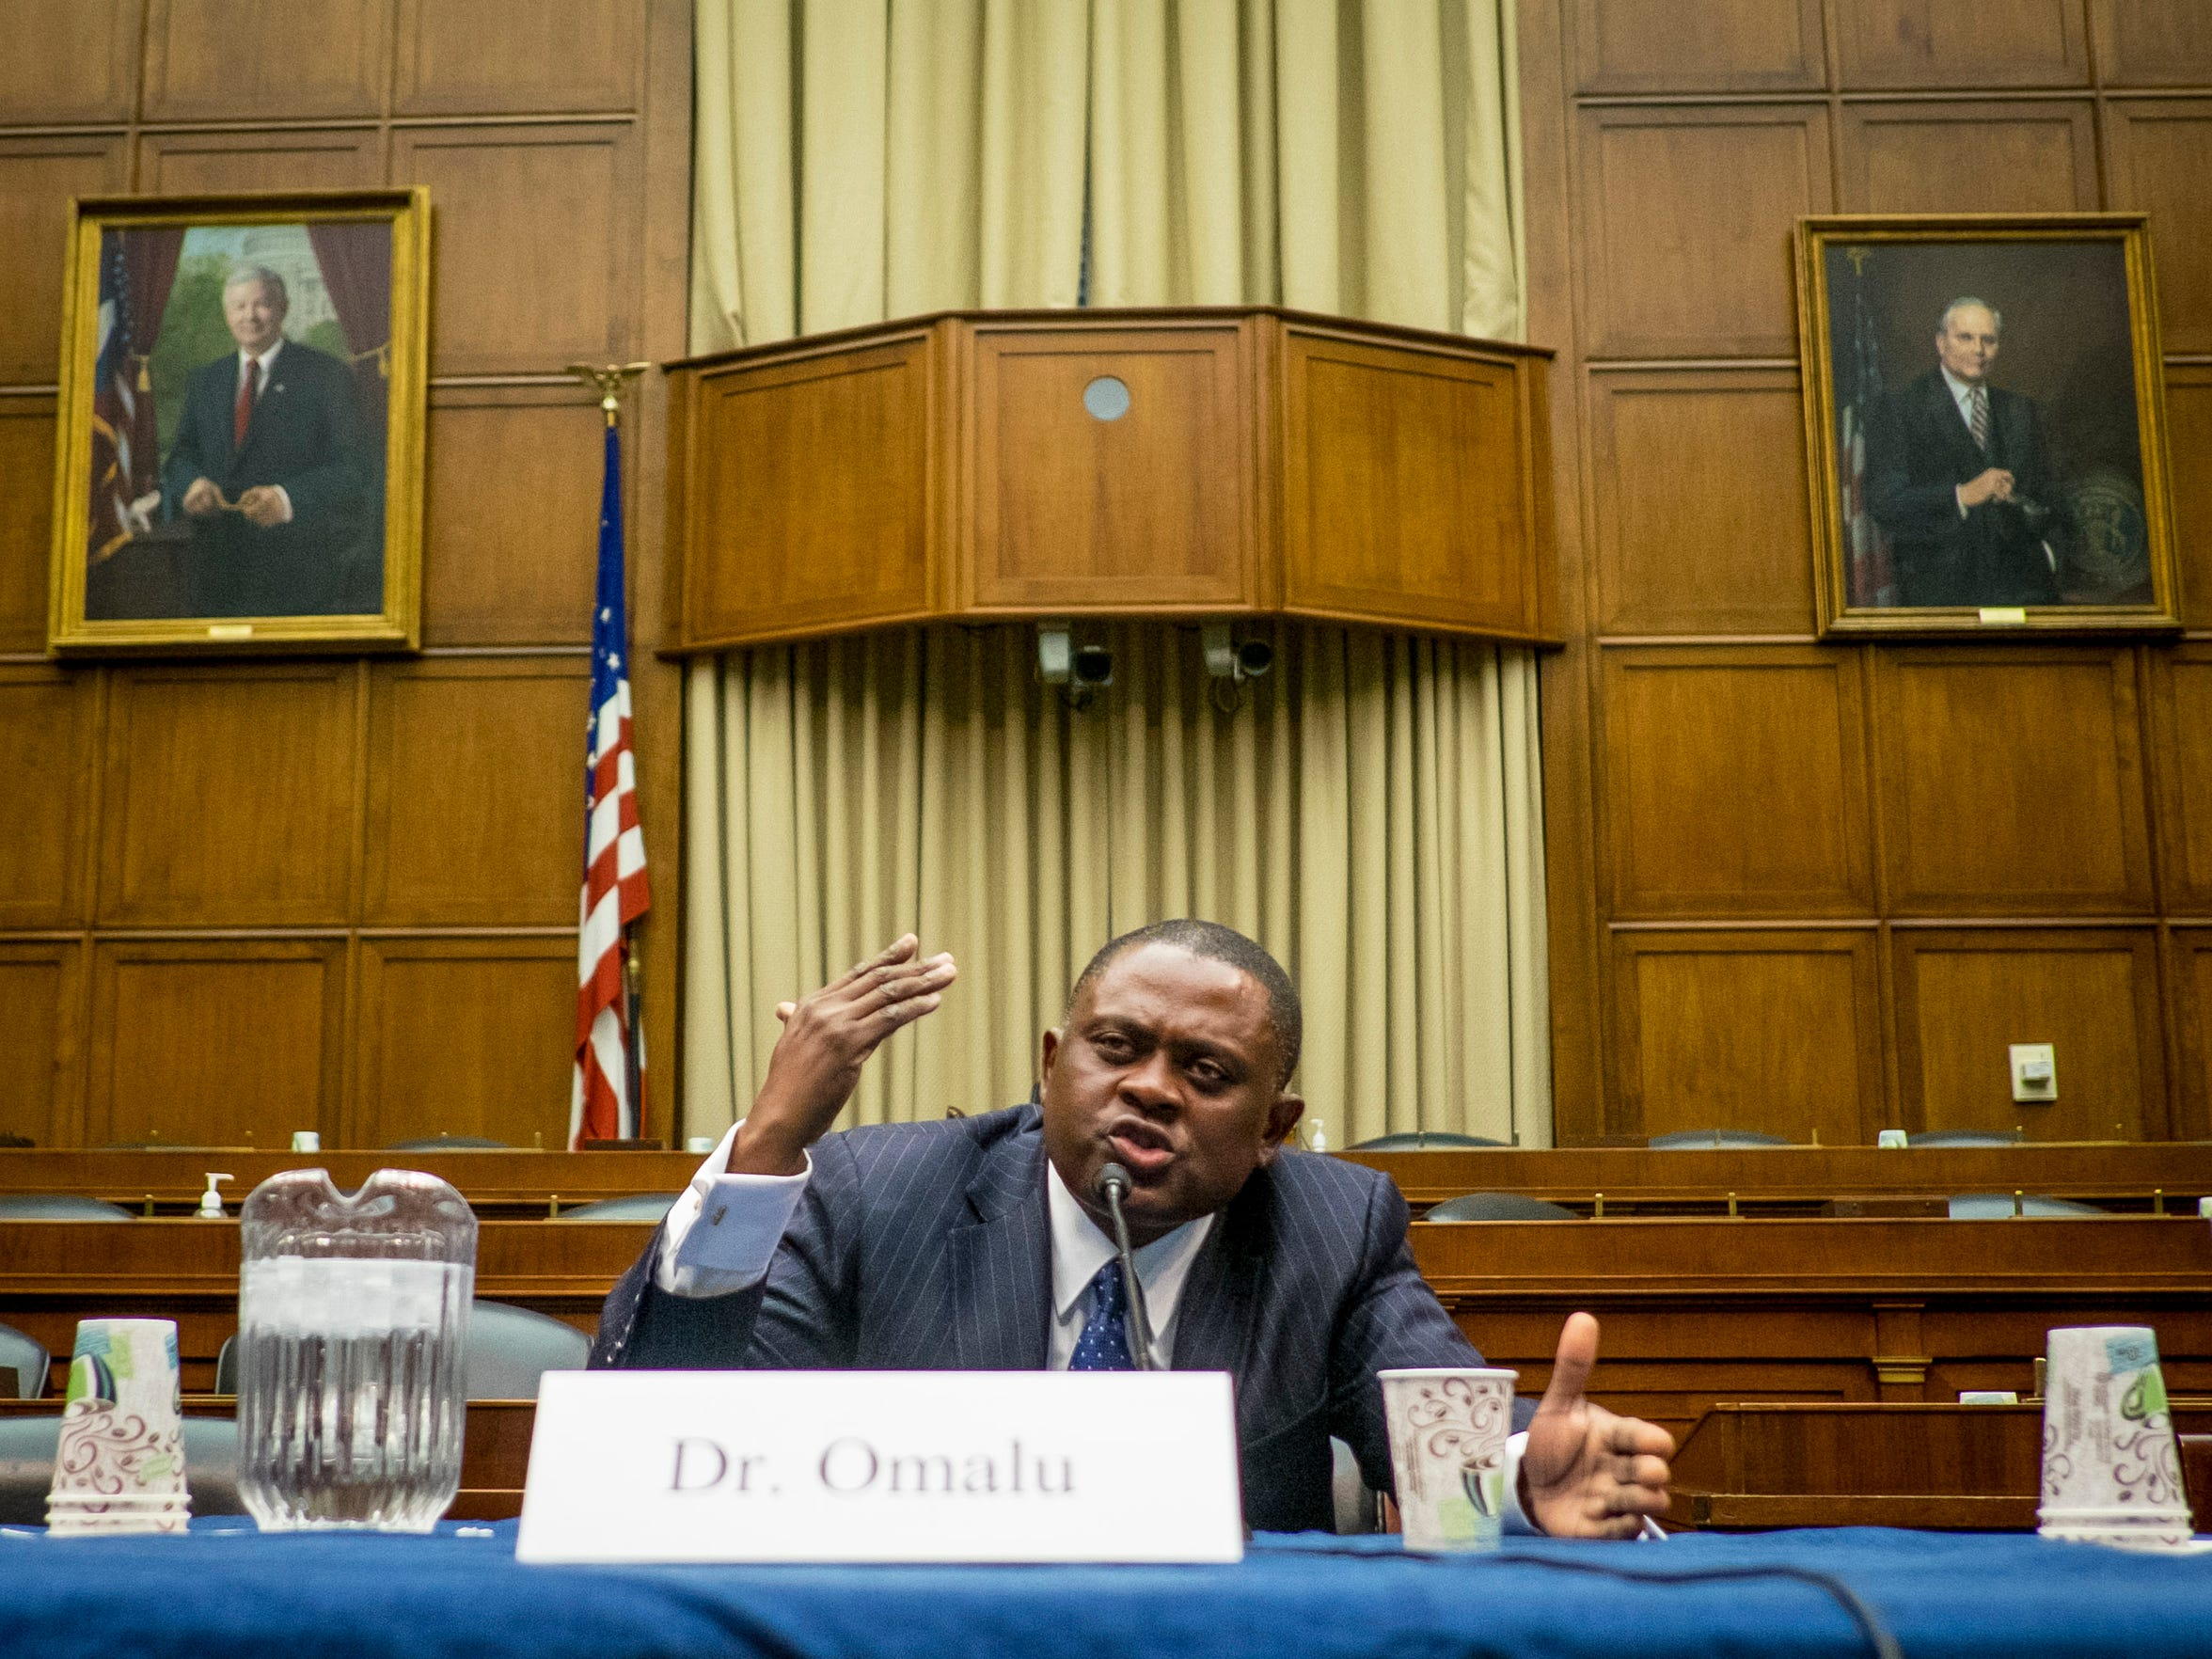 Forensic pathologist and neuropathologist Dr. Bennet Omalu is credited with discovering chronic traumatic encephalopathy, or CTE, in former NFL players.